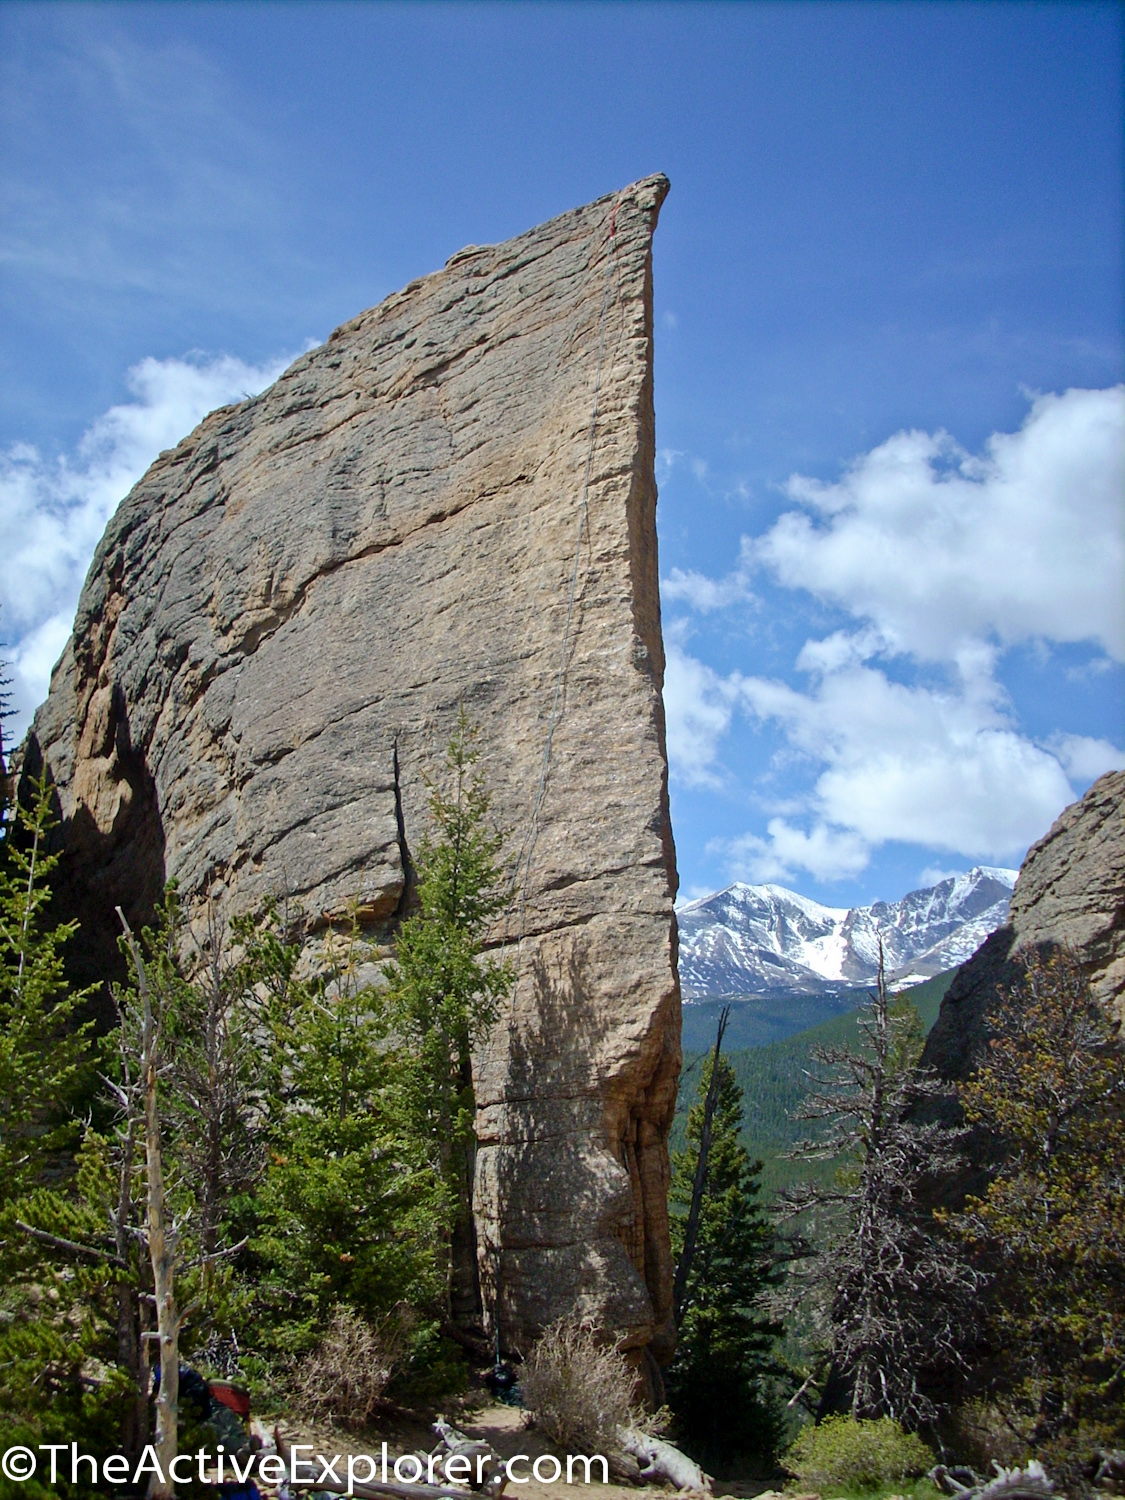 The Edge of Time, Estes Park